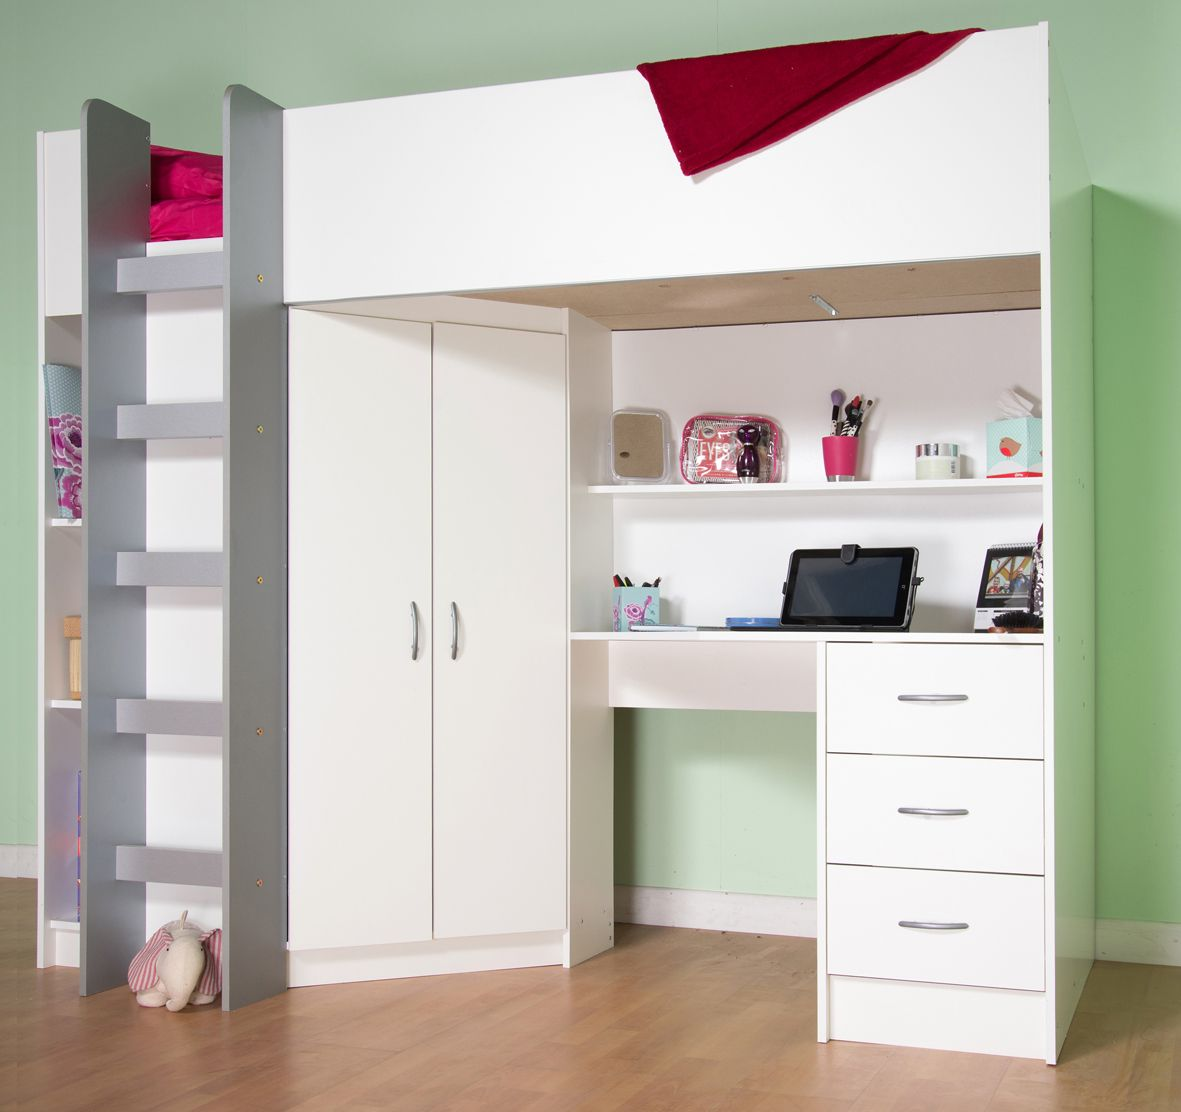 Cabin beds, Midi Beds, High Sleeper beds, Childrens Beds, Teenager beds,